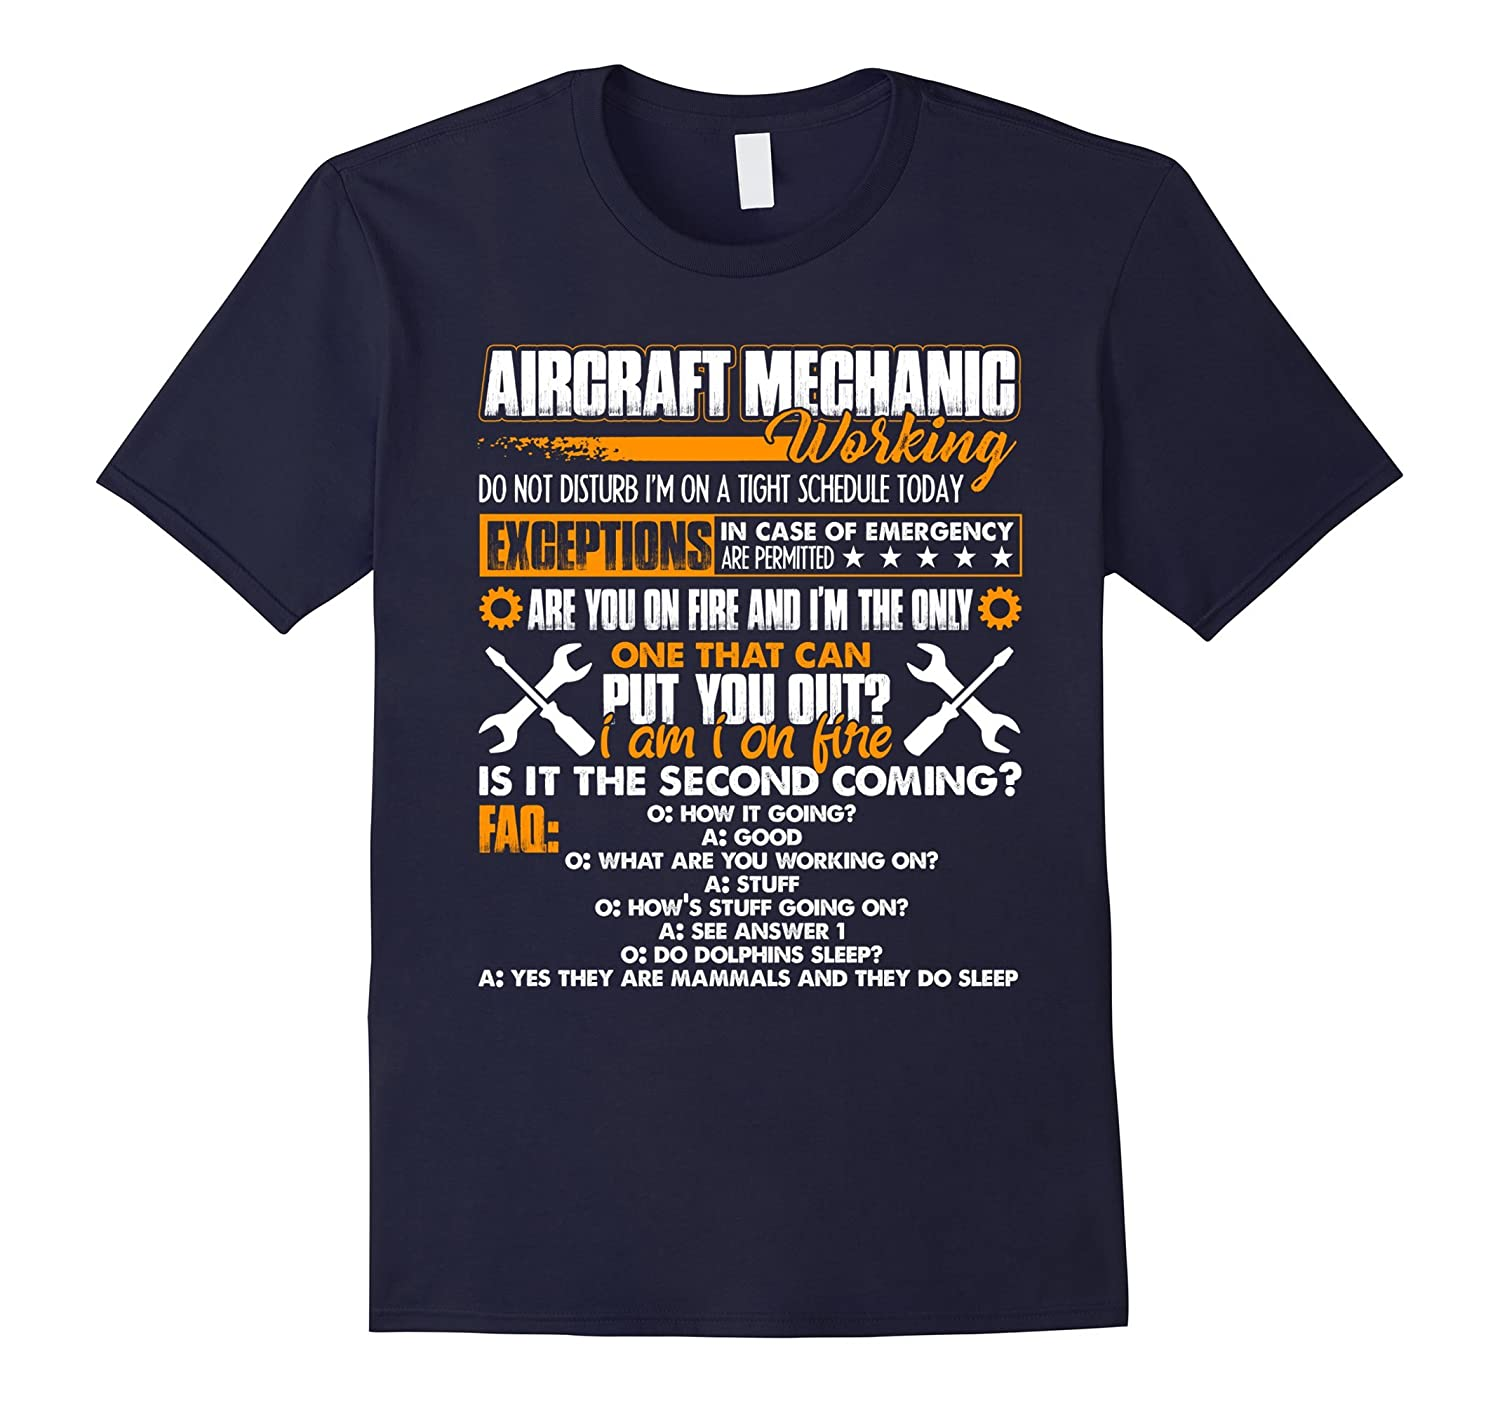 Aircraft Mechanic Shirts - Aircraft Mechanic Working T shirt-Vaci